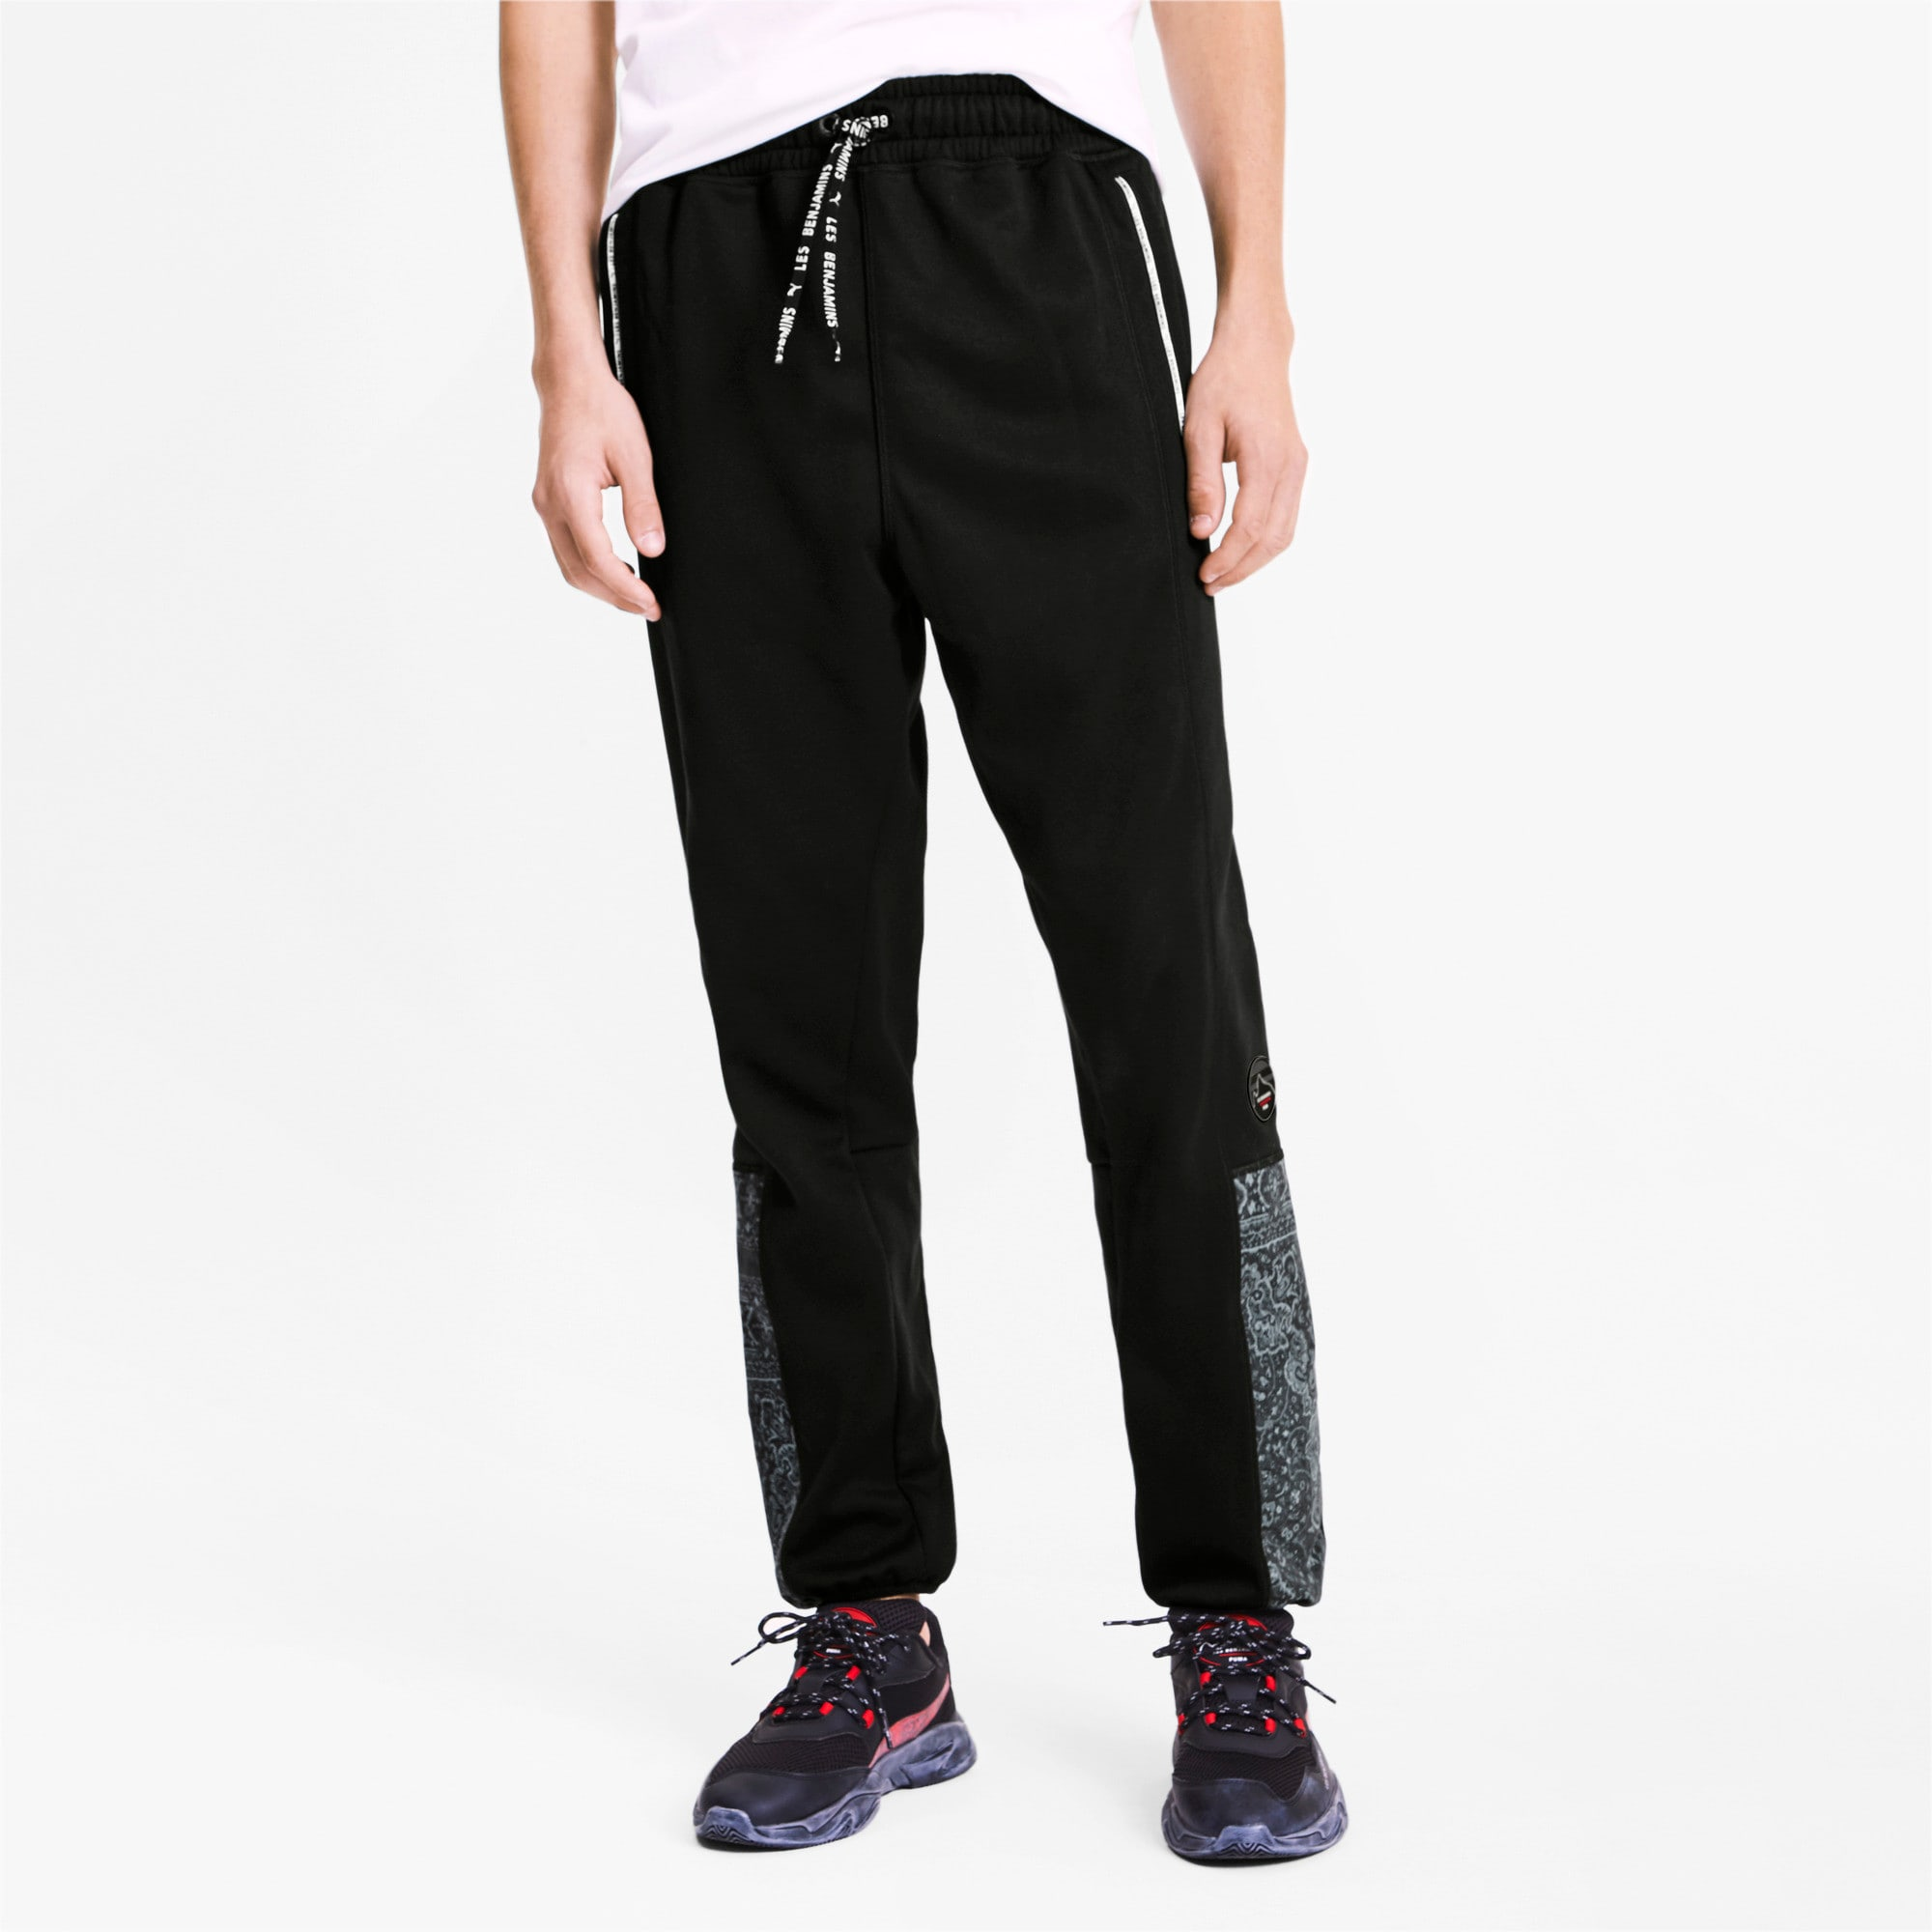 Thumbnail 2 of PUMA x LES BENJAMINS Woven Men's Track Pants, Puma Black, medium